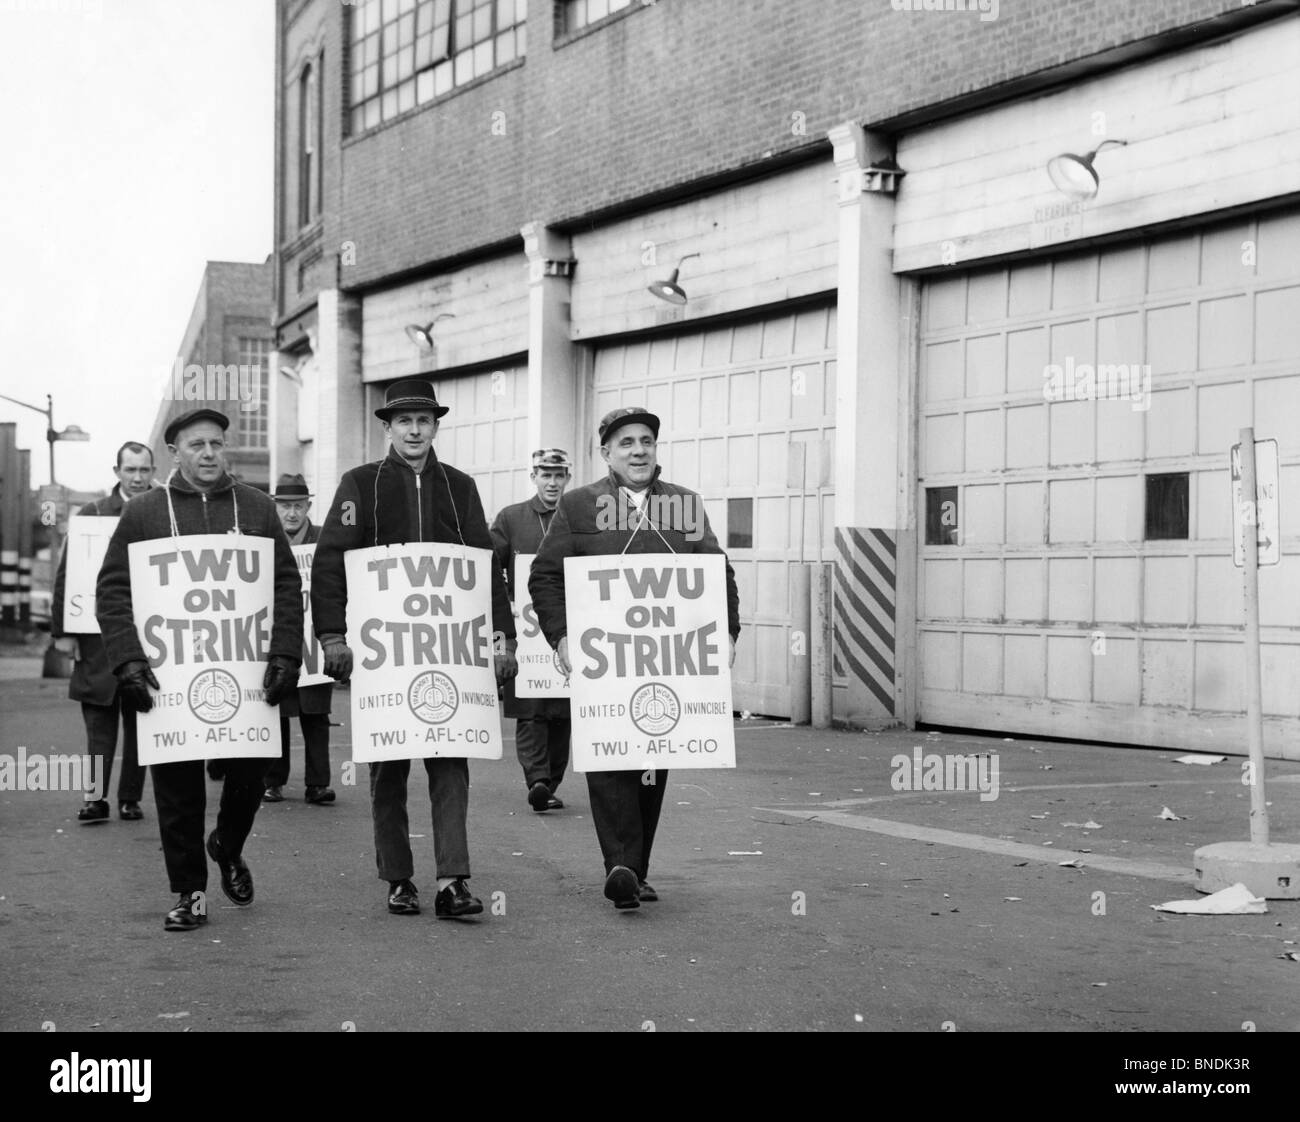 Group of people walking on a street holding placards - Stock Image